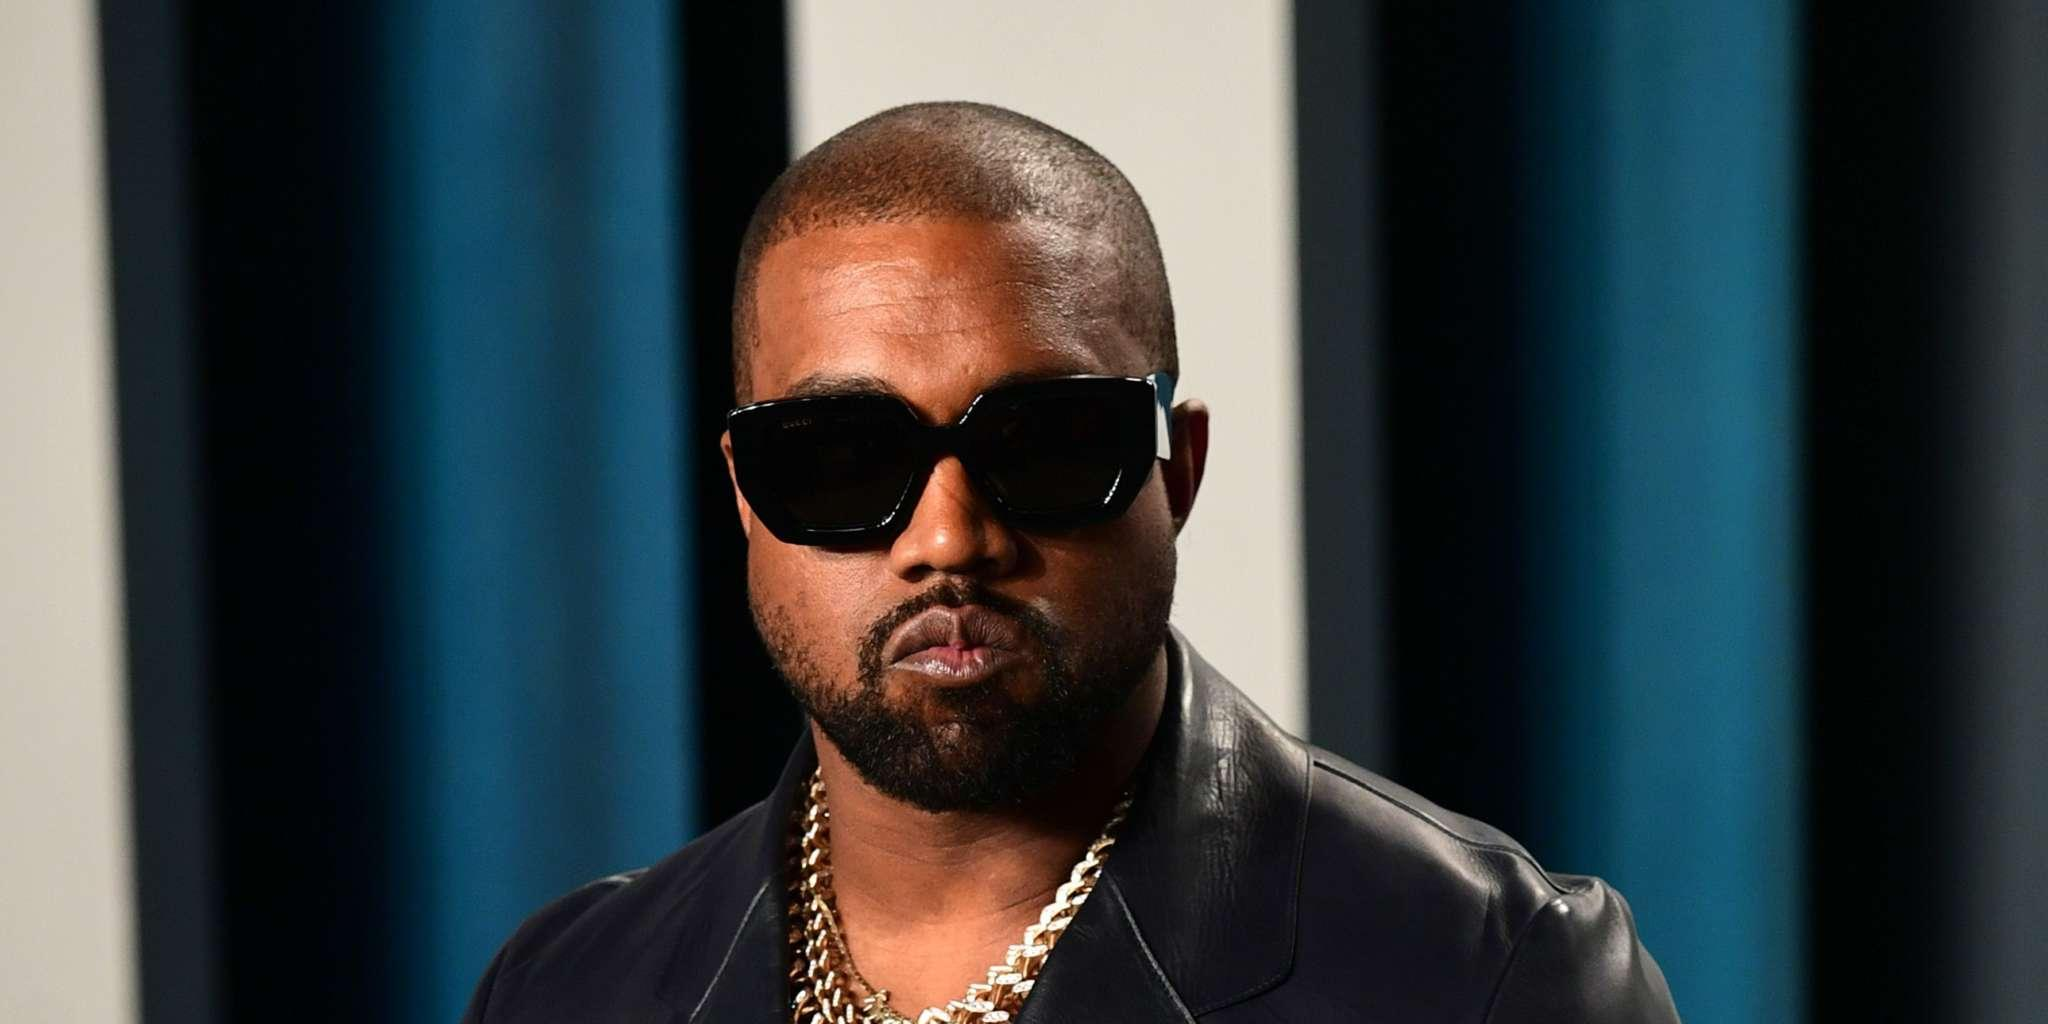 Kanye West Reveals Some Surprising Early Poll Numbers - He Still Plans To Run For President